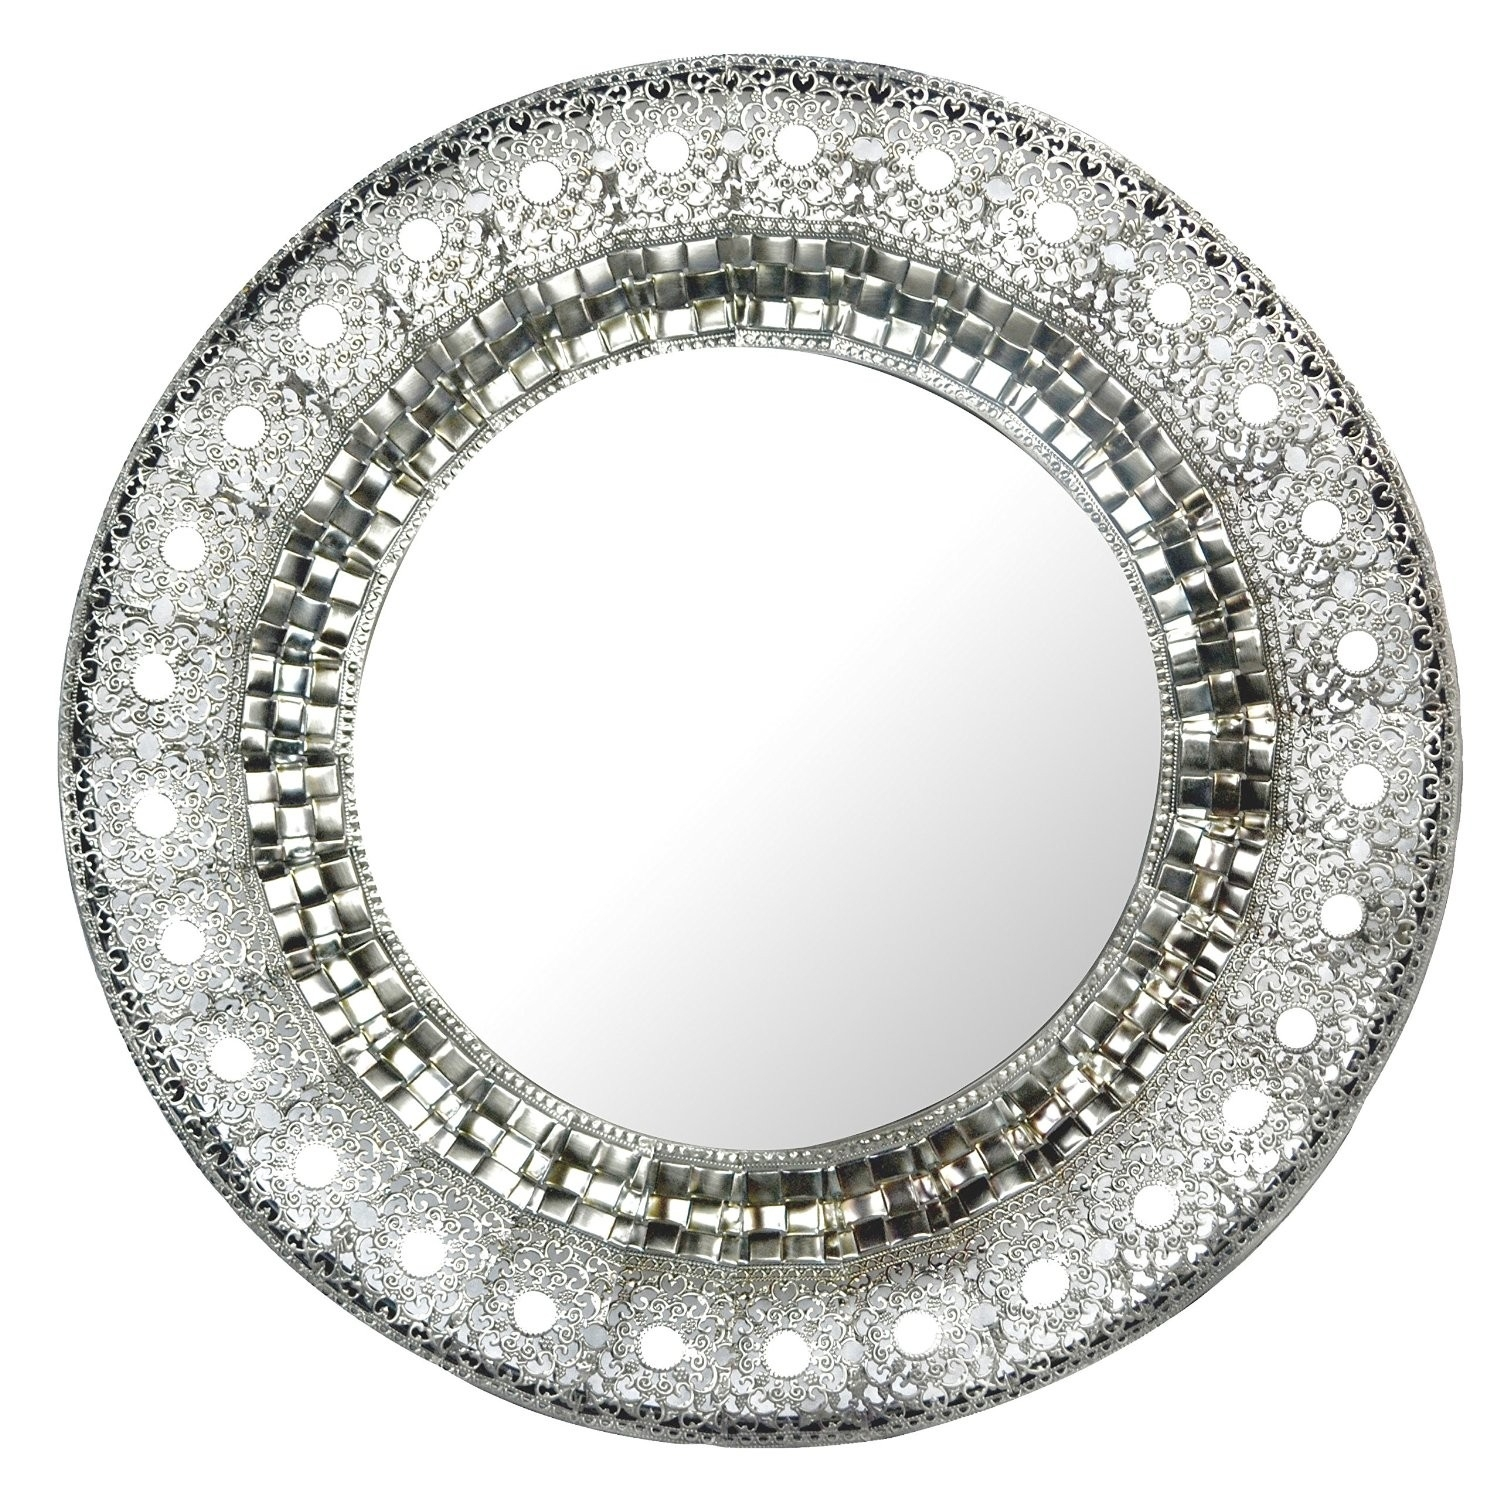 Amazing Silver Round Bathroom Mirrors 67 For With Silver Round With Regard To Silver Round Mirrors (View 4 of 15)